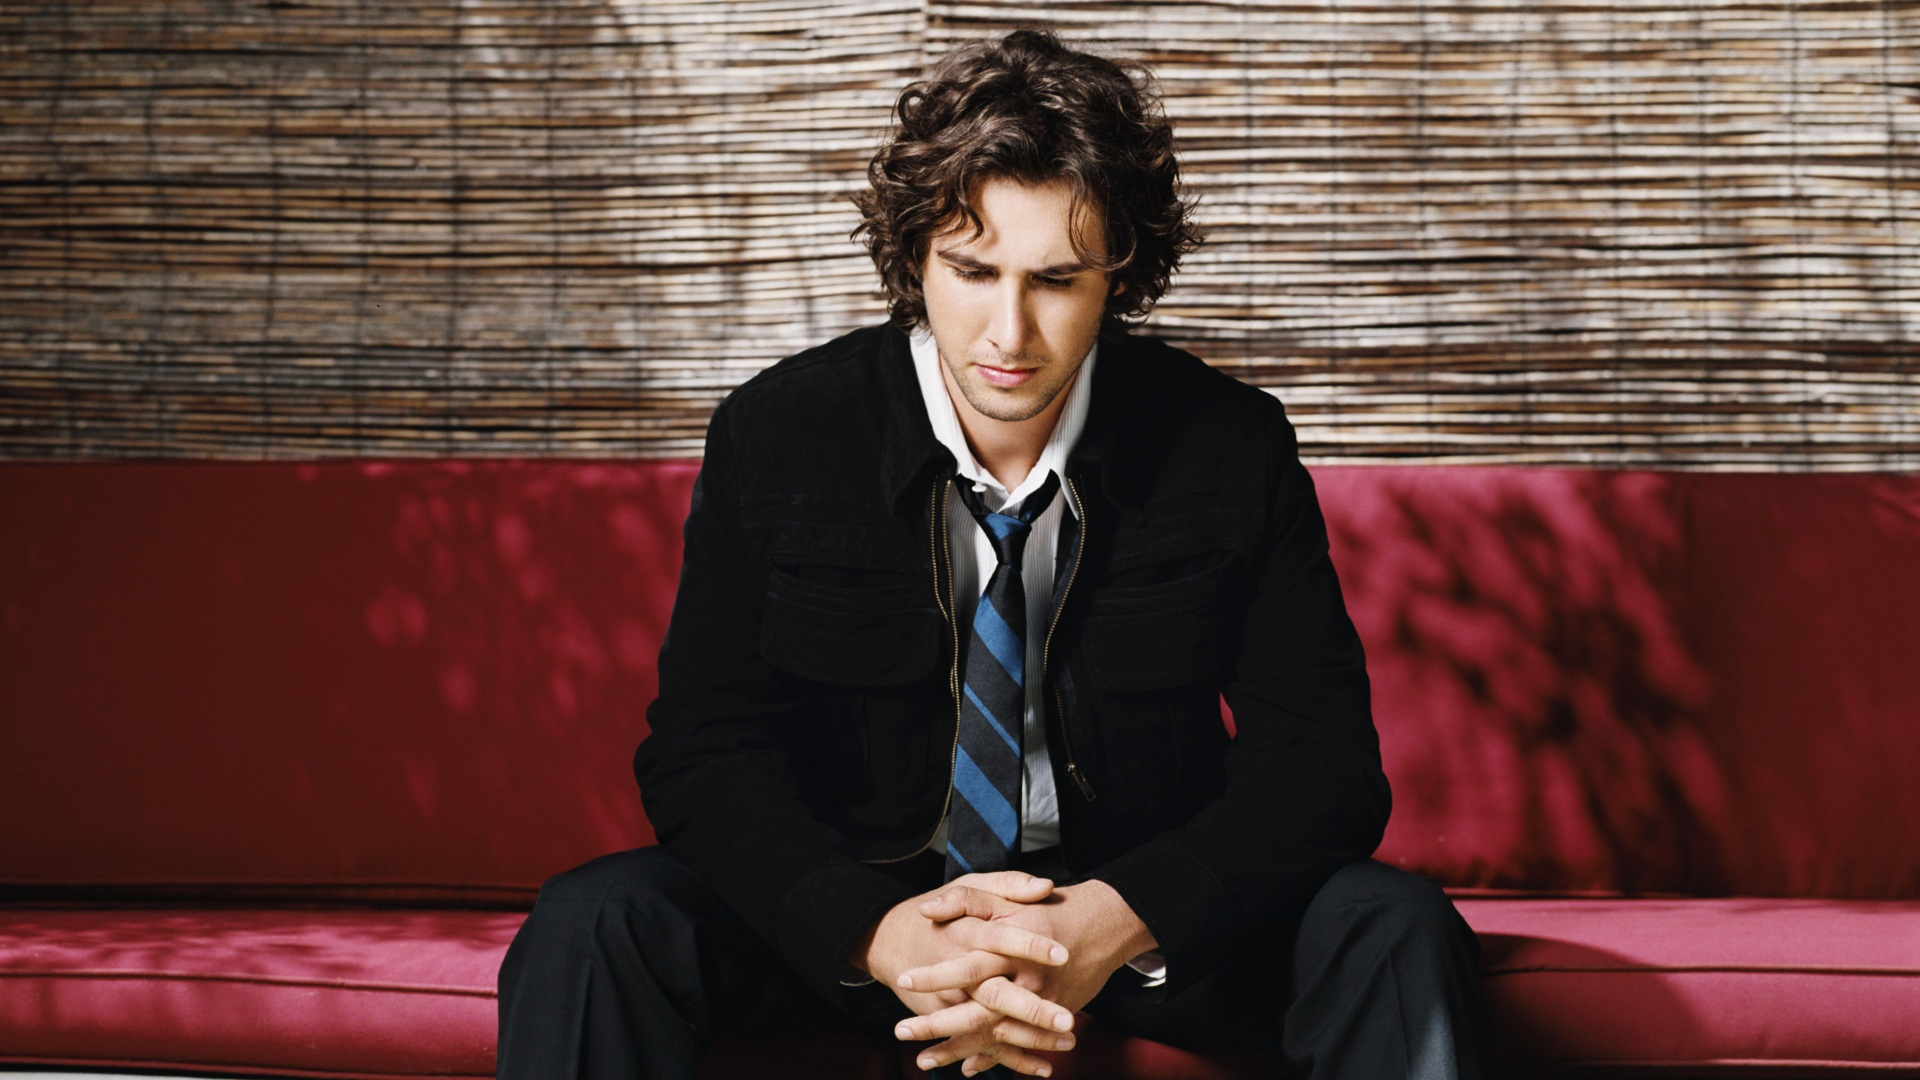 Josh Groban Wallpapers